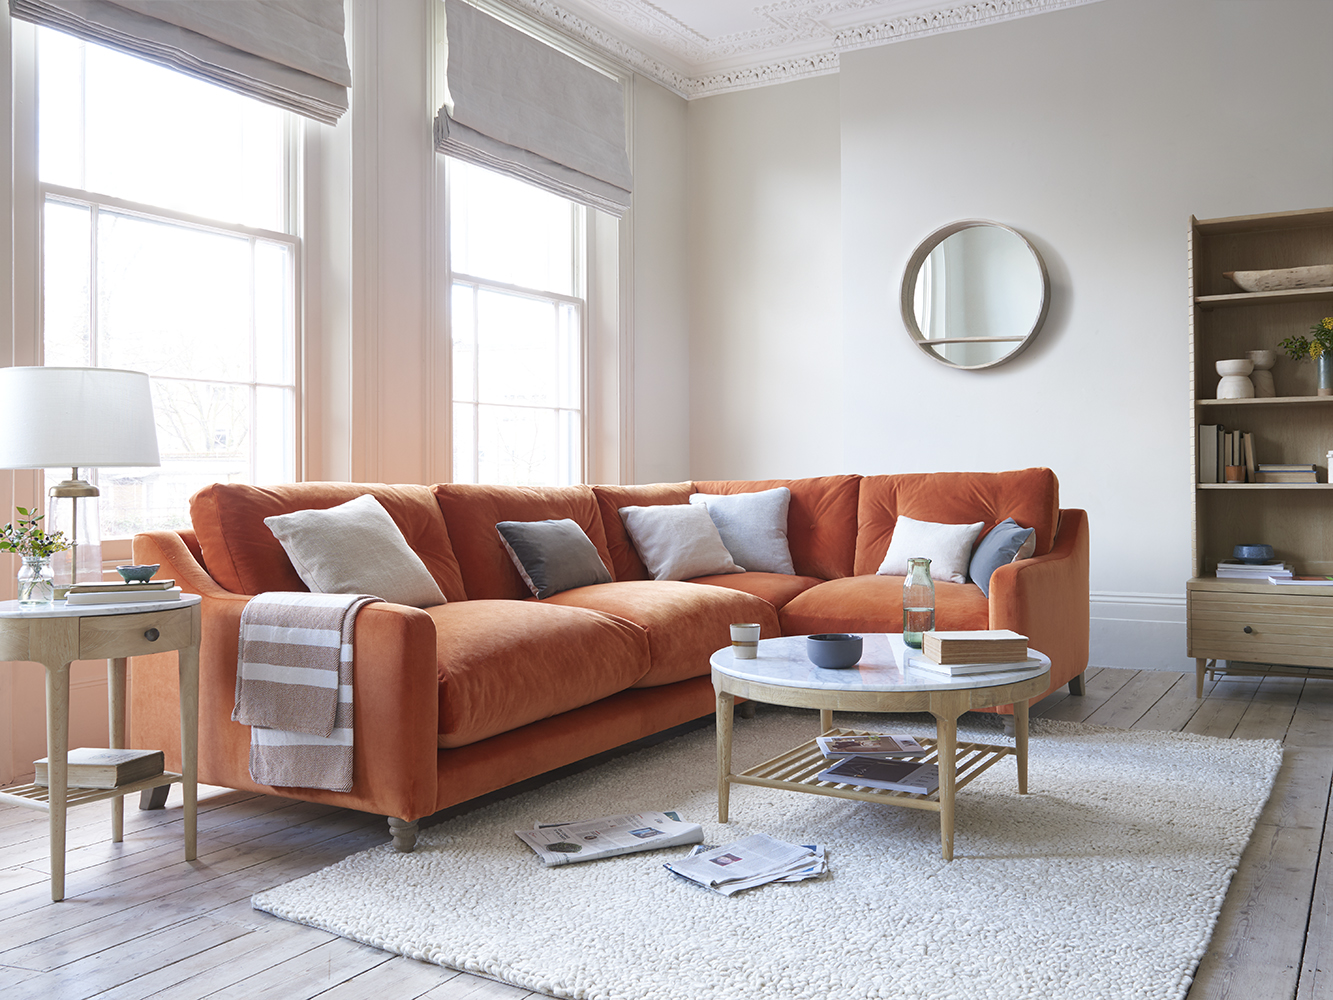 Incredible Slim Jim Corner Sofa Download Free Architecture Designs Embacsunscenecom